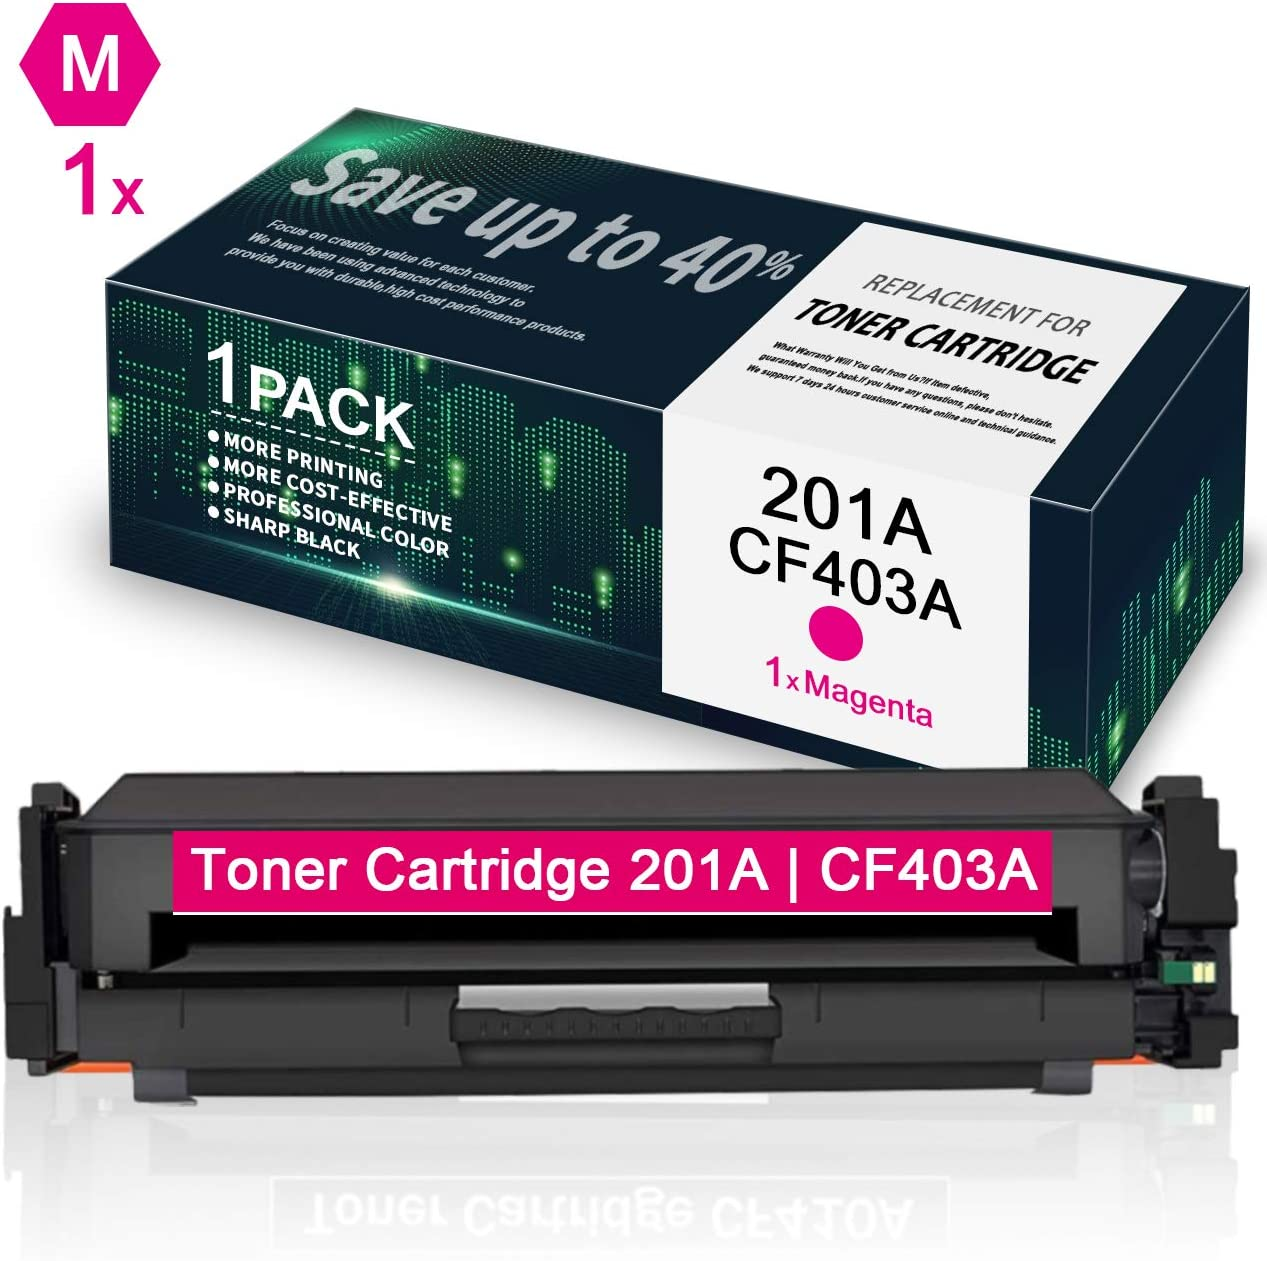 CF403A Magenta Toner Cartridge Replacement for HP Color Laserjet Pro MFP M277n M277dw M277c6 M274n Pro M252dw M252n by VaserInk 201A